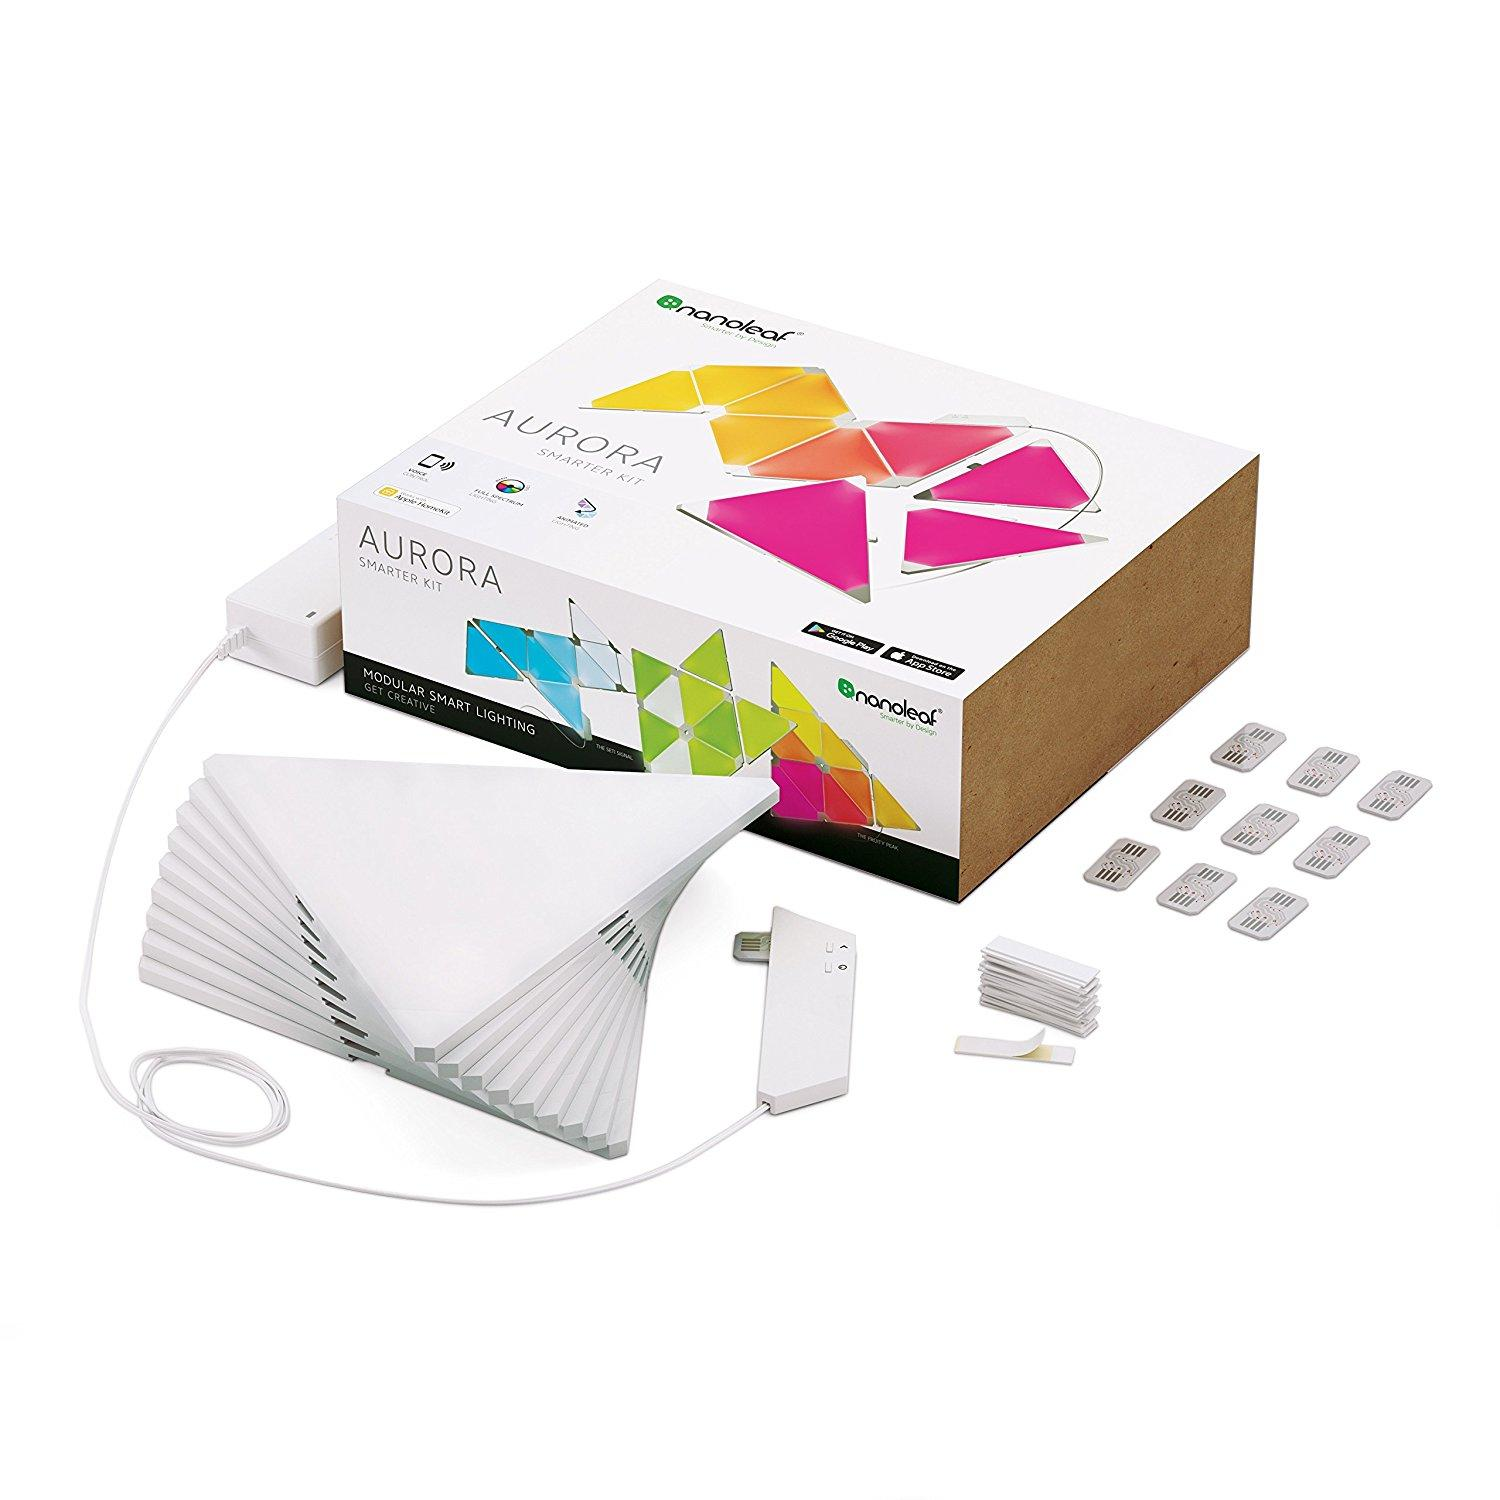 Nanoleaf Aurora Modular Smart Lighting Kit